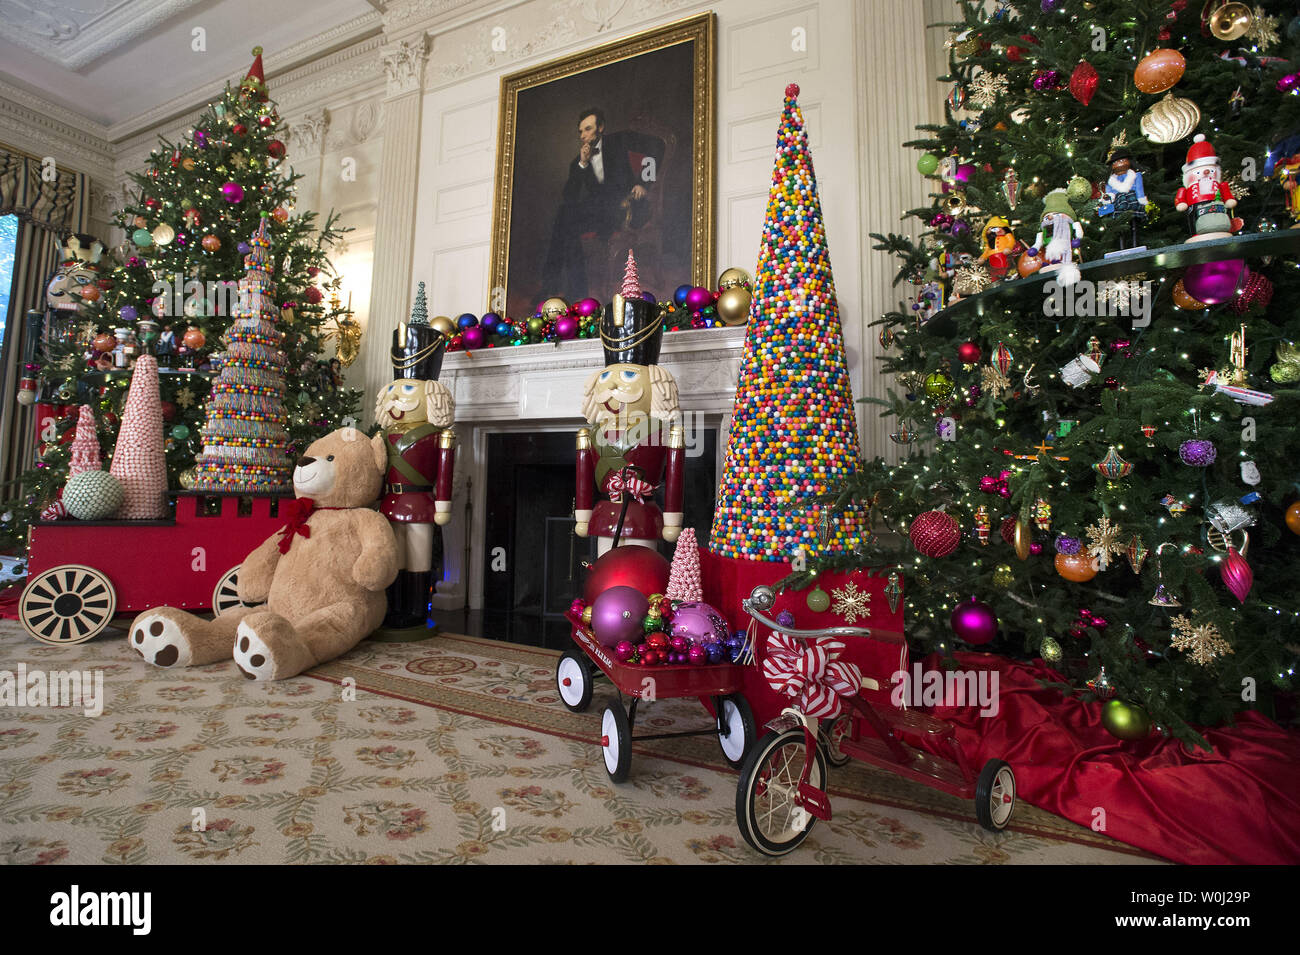 The State Dinning Room is seen decorated during a holiday tour at the White House in Washington, D.C. on December 2, 2015. This year's team is 'A Timeless Tradition, and reflects long-held traditions cherished across America and commemorates extradorinaiy moments that help shaped the county. Photo by Kevin Dietsch/UPI. - Stock Image